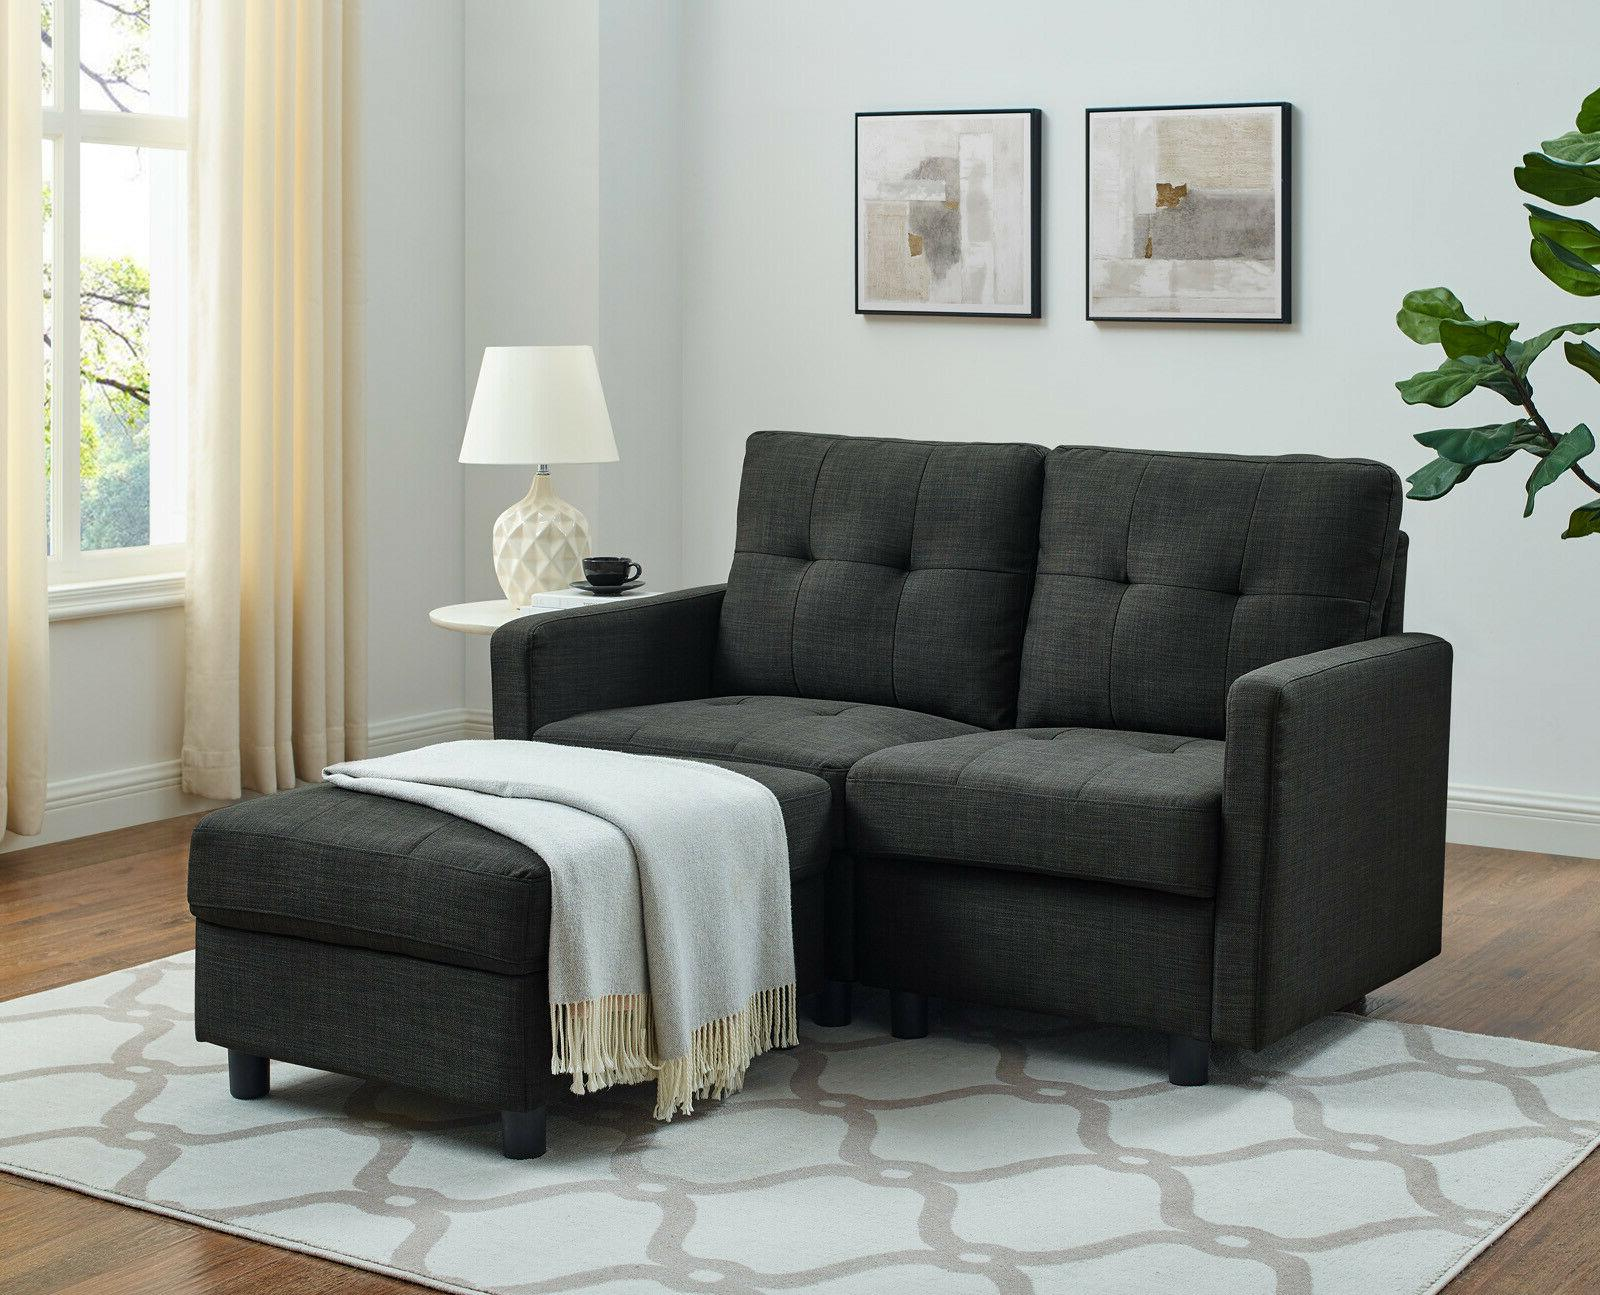 Sectional Sofa Modern Linen with Chaise